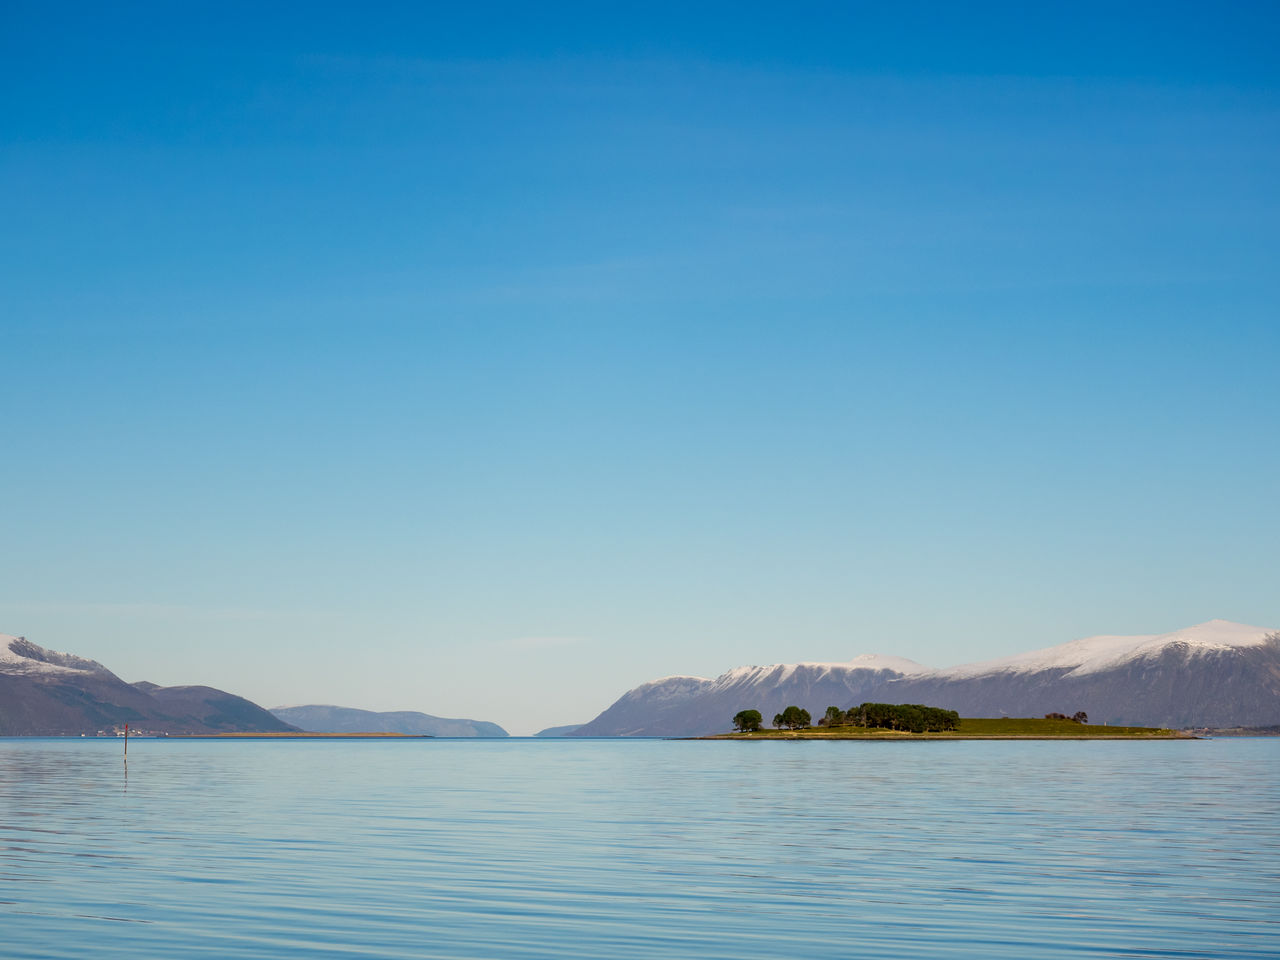 mountain, scenics, blue, mountain range, tranquil scene, beauty in nature, tranquility, nature, water, copy space, outdoors, no people, clear sky, waterfront, lake, sky, day, landscape